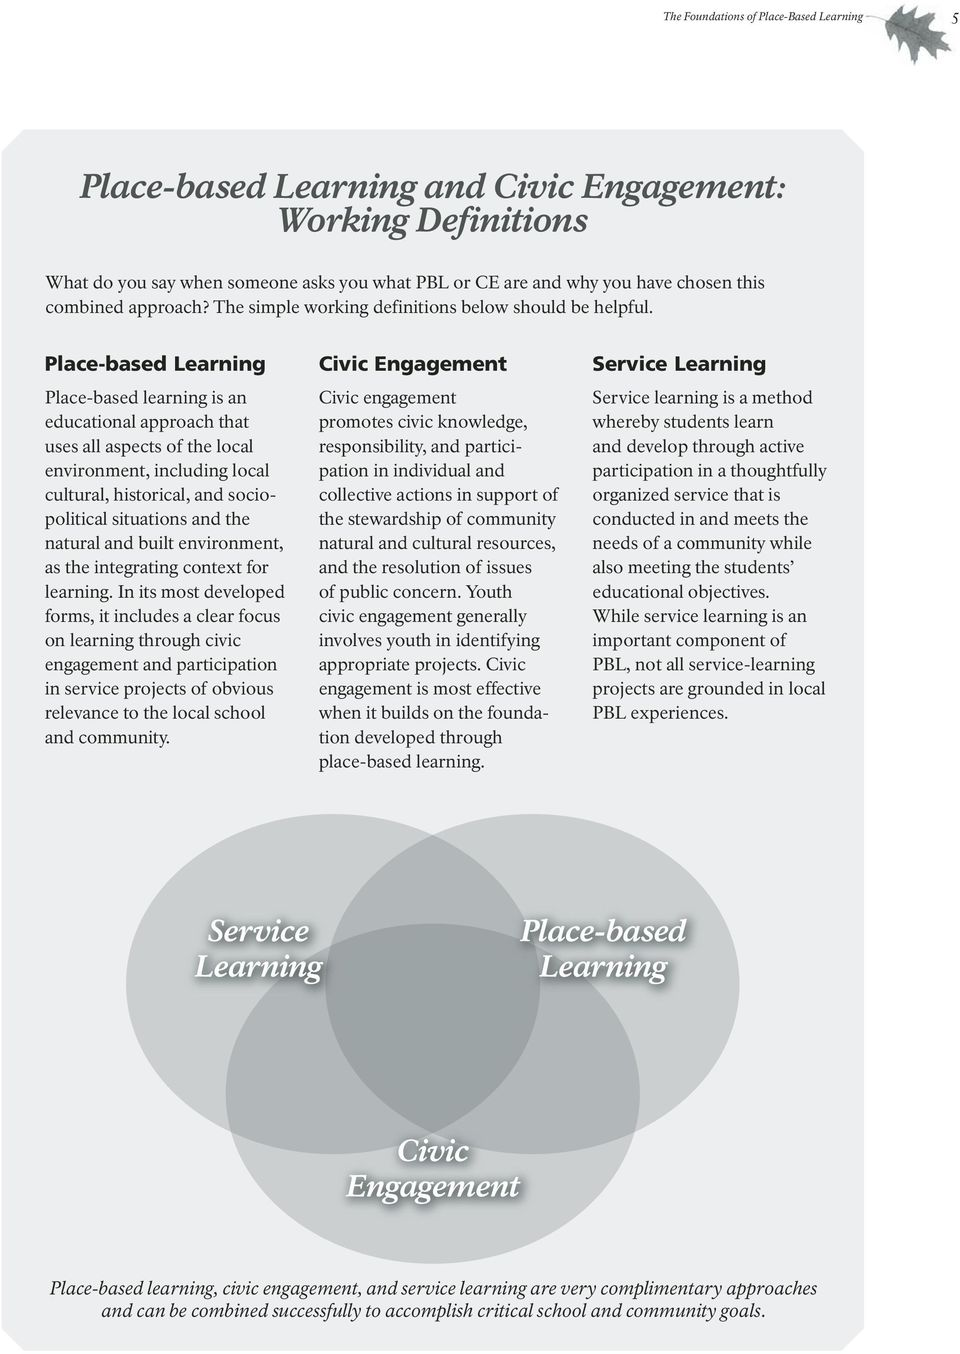 Place-based Learning Place-based learning is an educational approach that uses all aspects of the local environment, including local cultural, historical, and sociopolitical situations and the